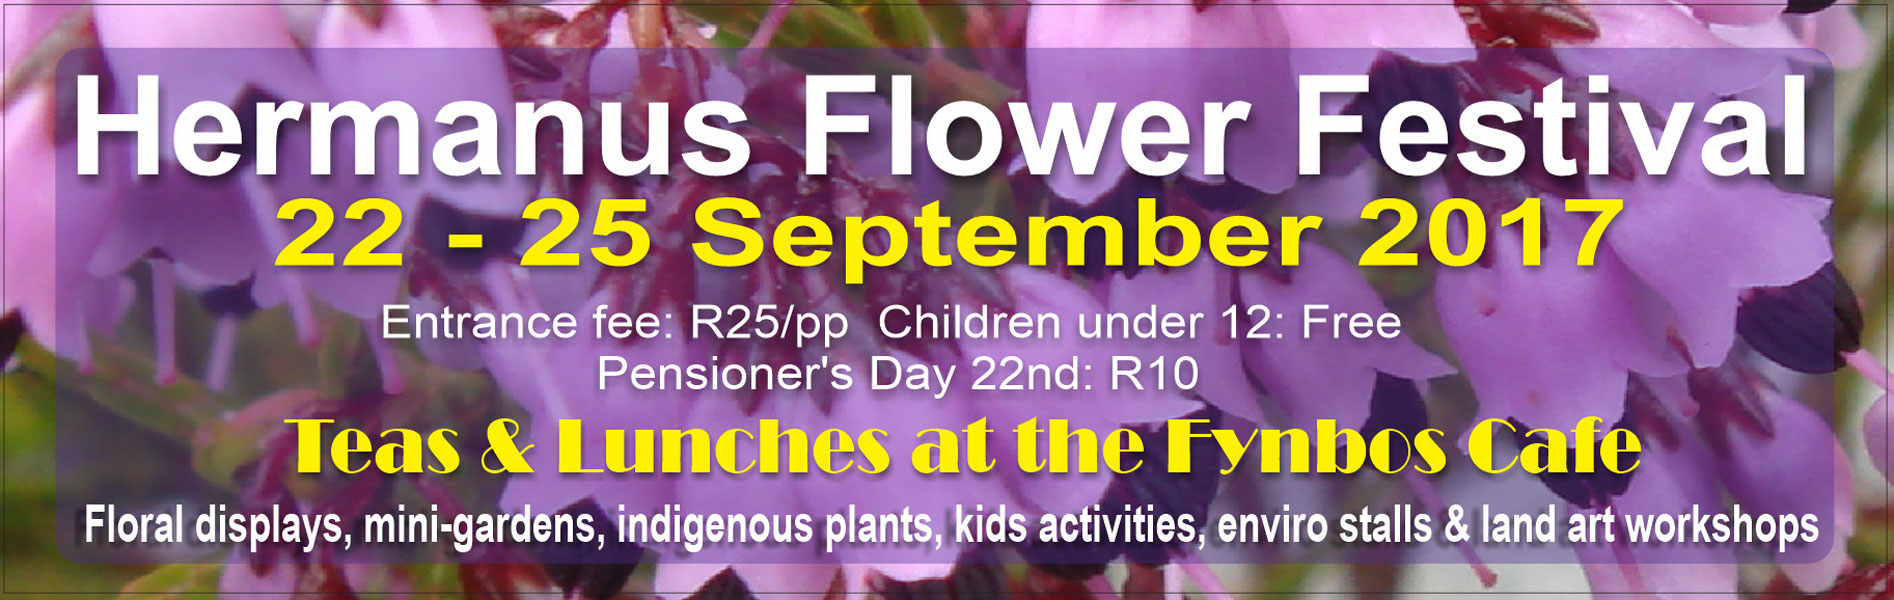 60th Hermanus Flower Festival at Fernkloof gardens, Hermanus - 22nd to 25th September 2017